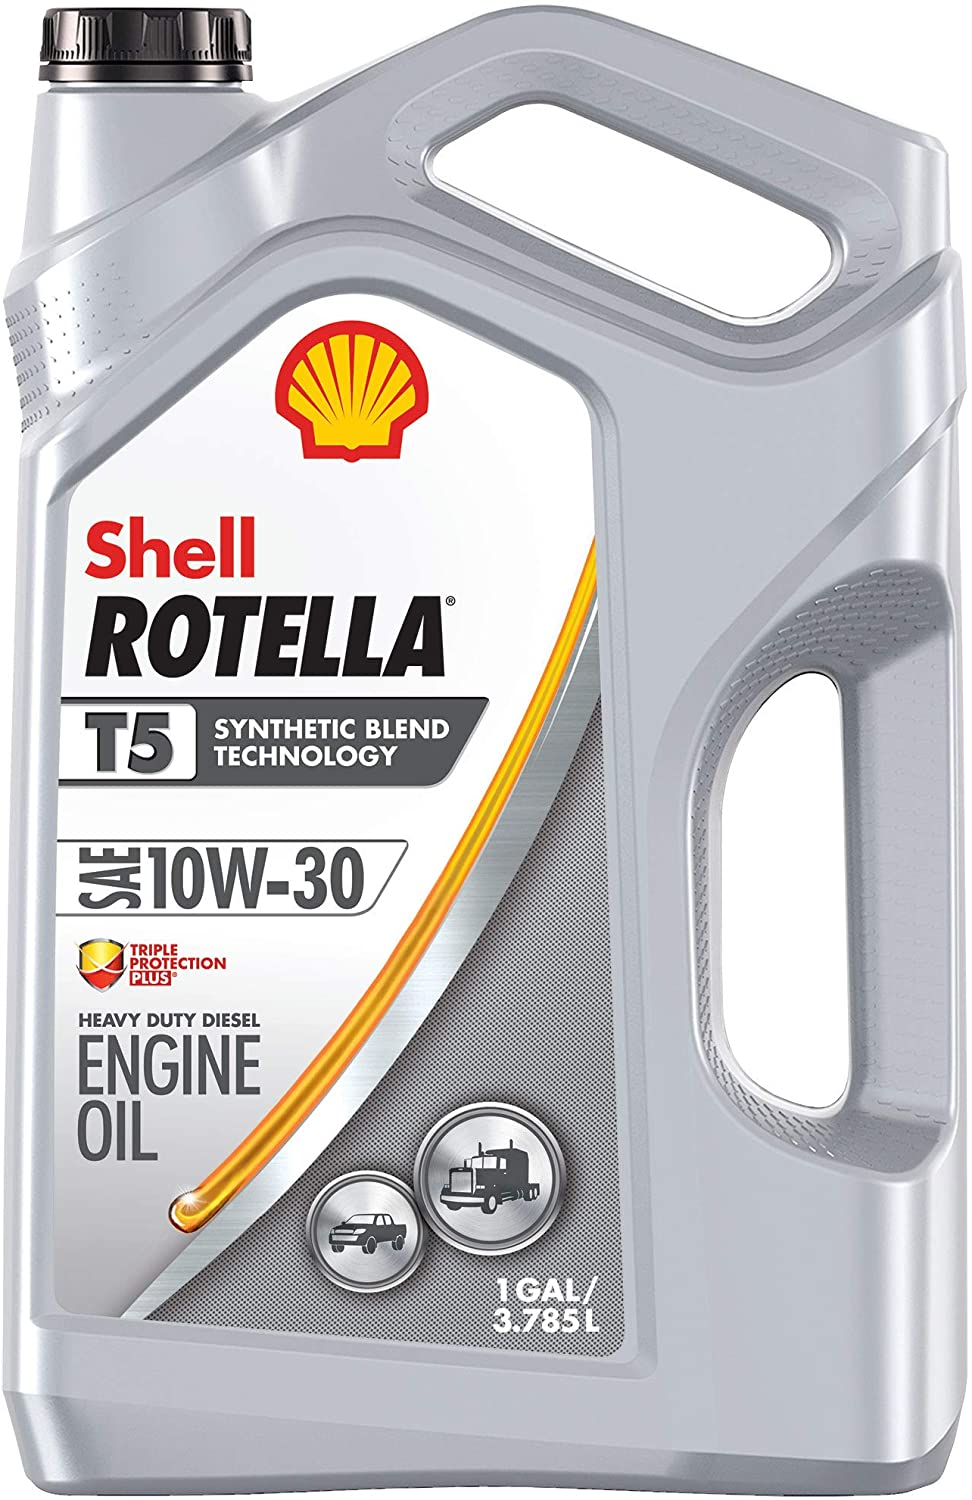 Shell Rotella T5 Synthetic Blend Diesel Engine Oil